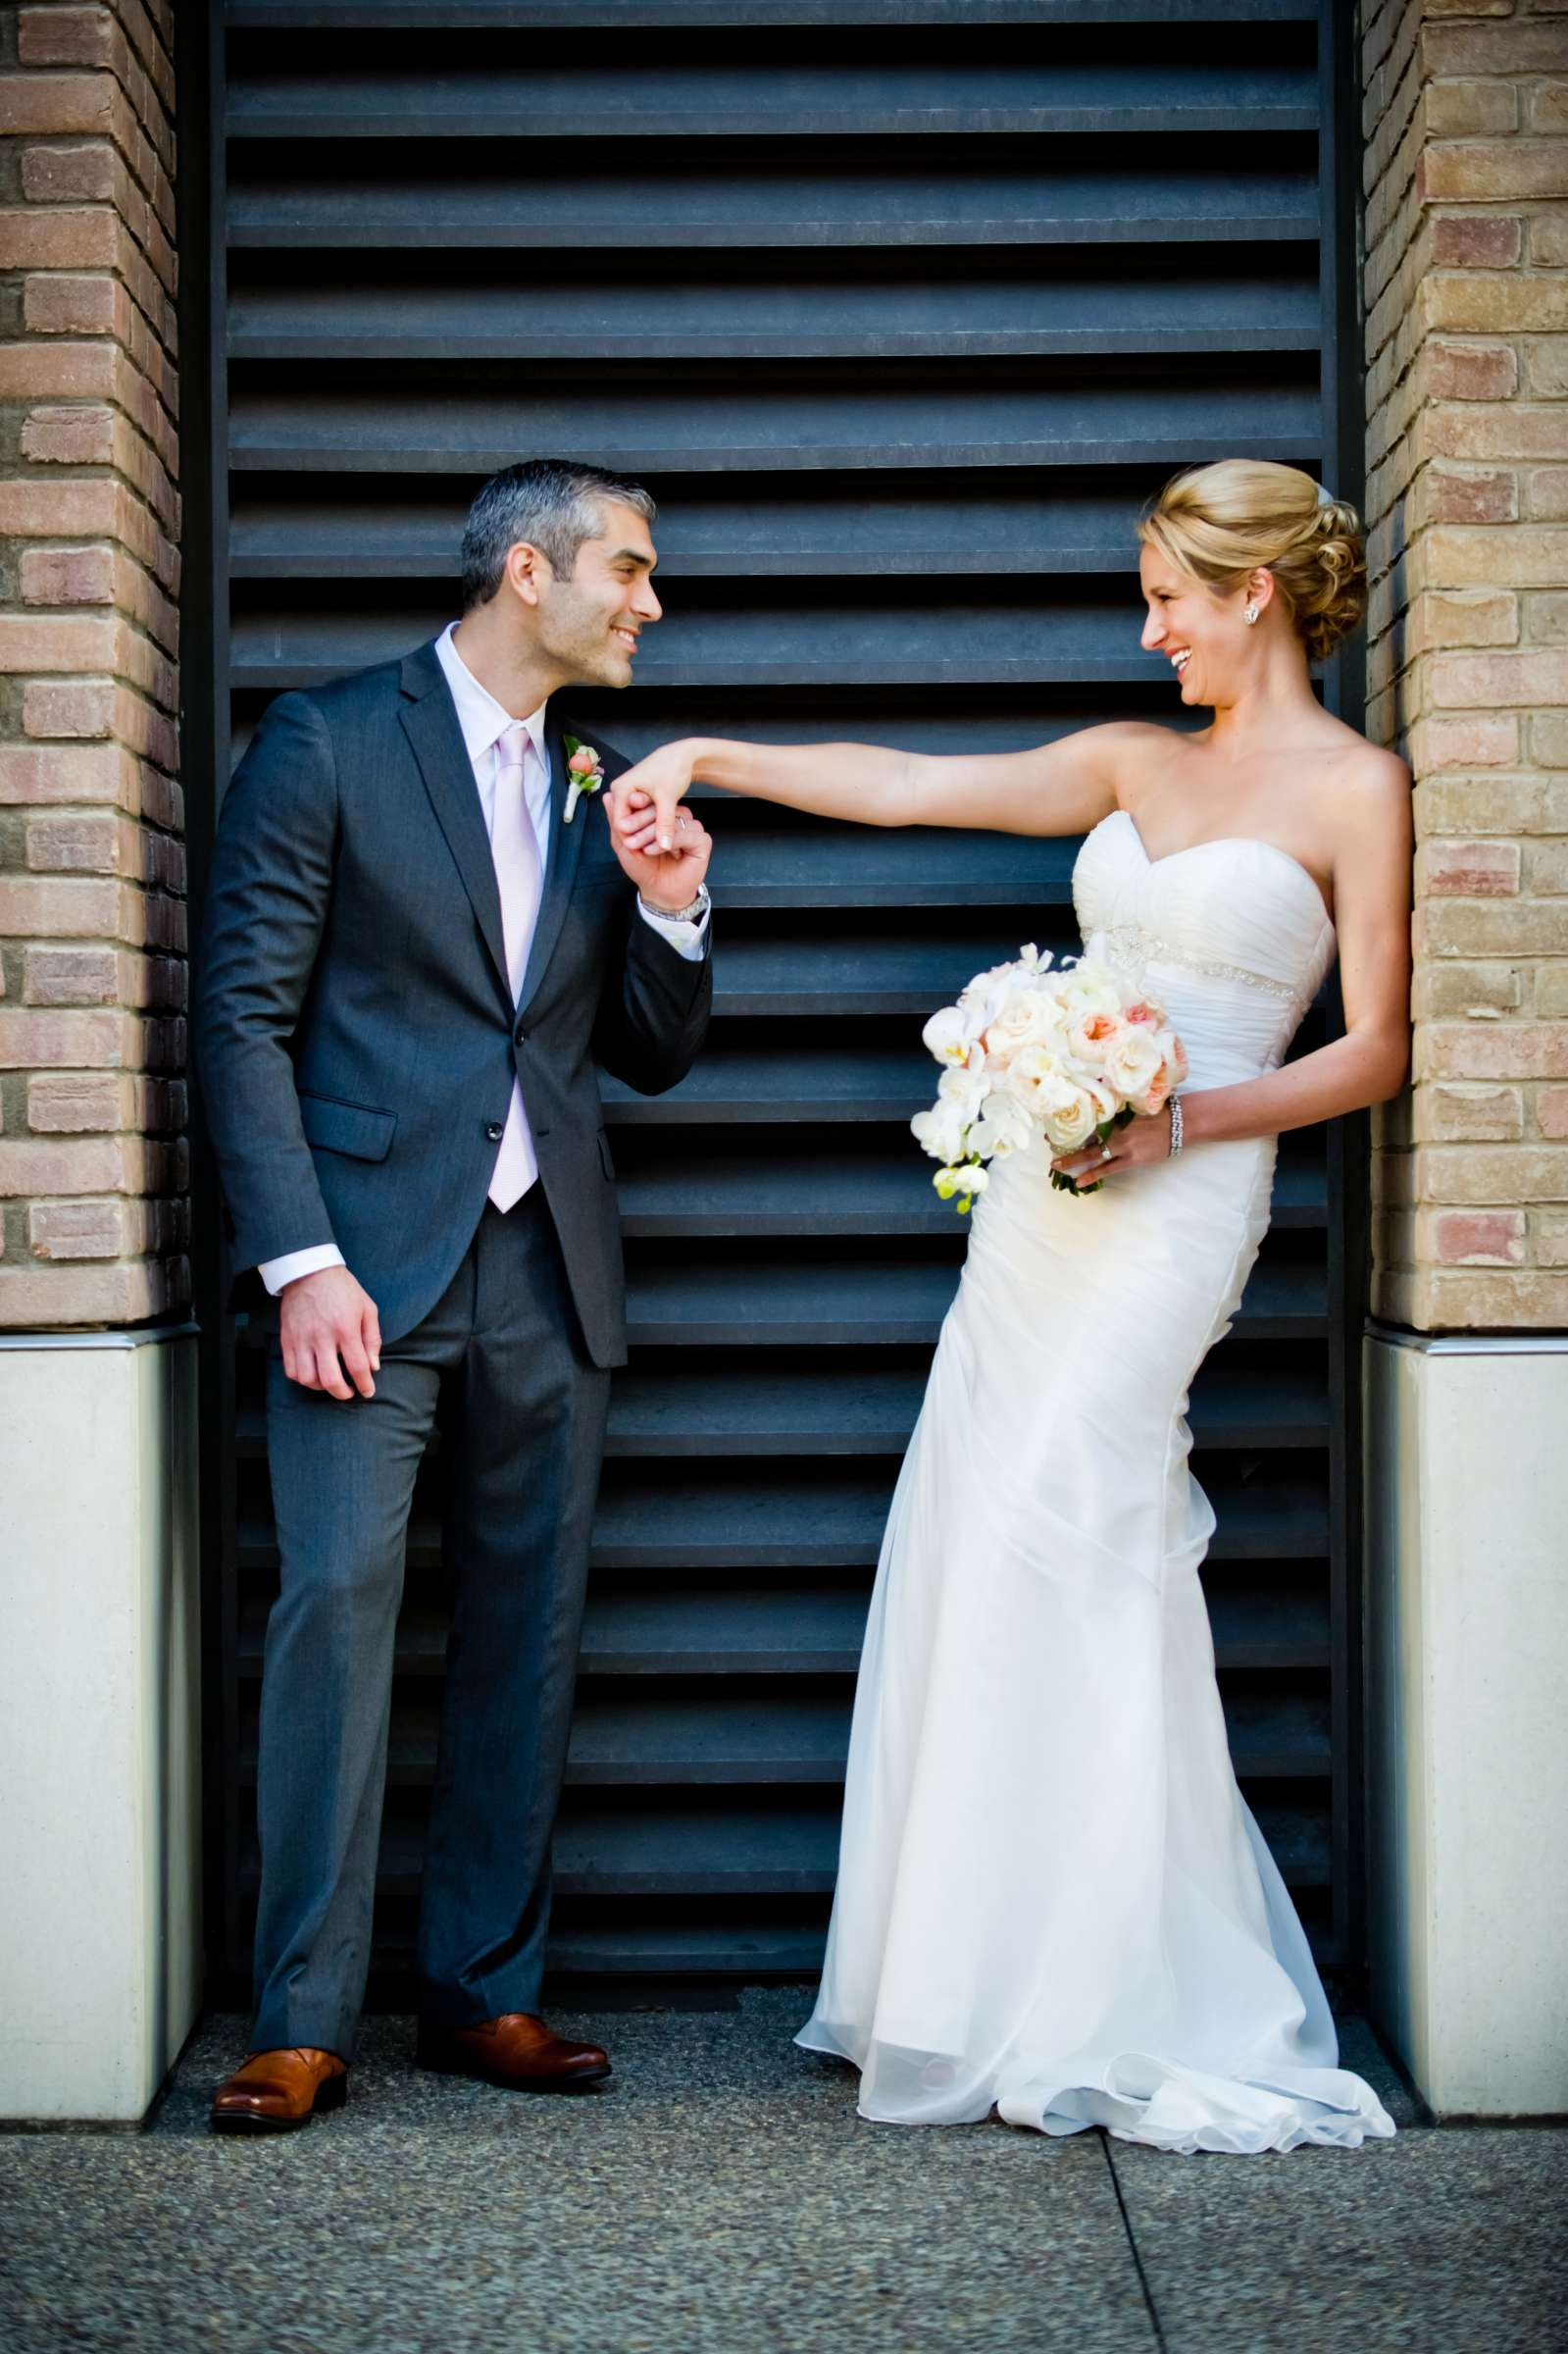 Stylized Portrait, Urban Downtown at Ultimate Skybox Wedding, Chelsea and Frank Wedding Photo #1 by True Photography